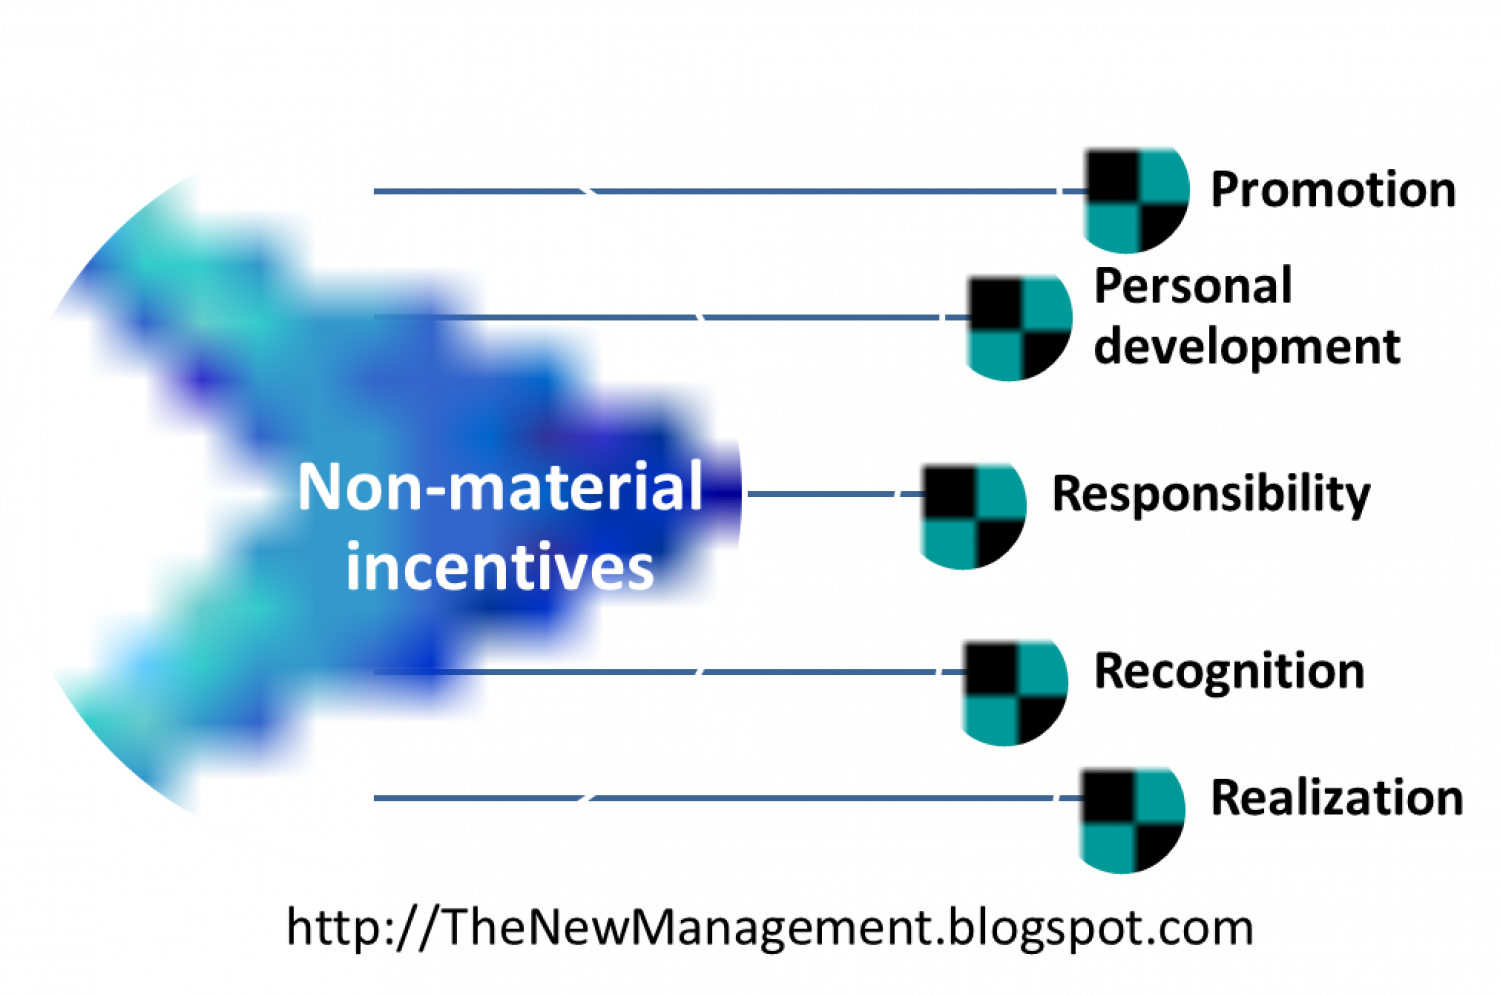 Non-material incentives Infographic